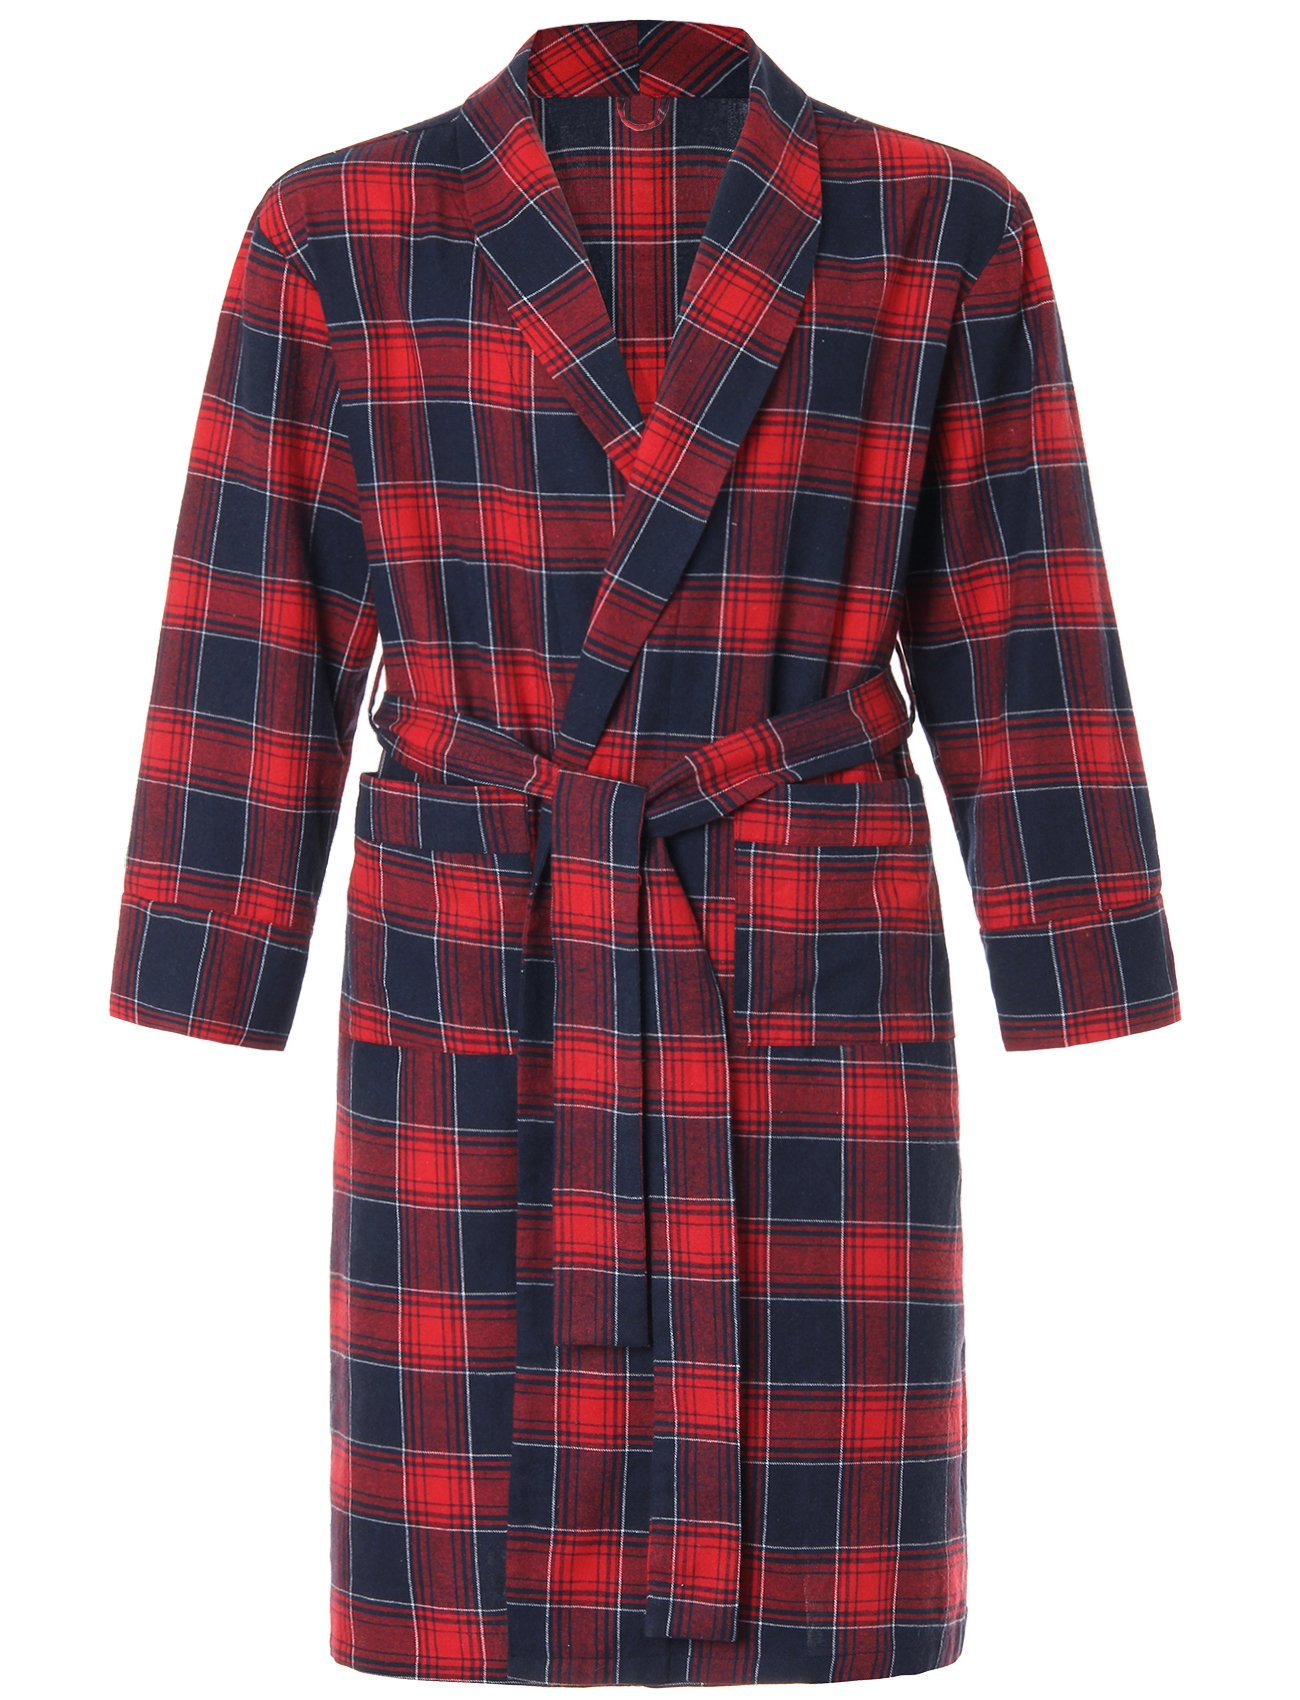 Image of A Best Seller: Blue and Red Plaid Flannel Robe for Men - See More Colors